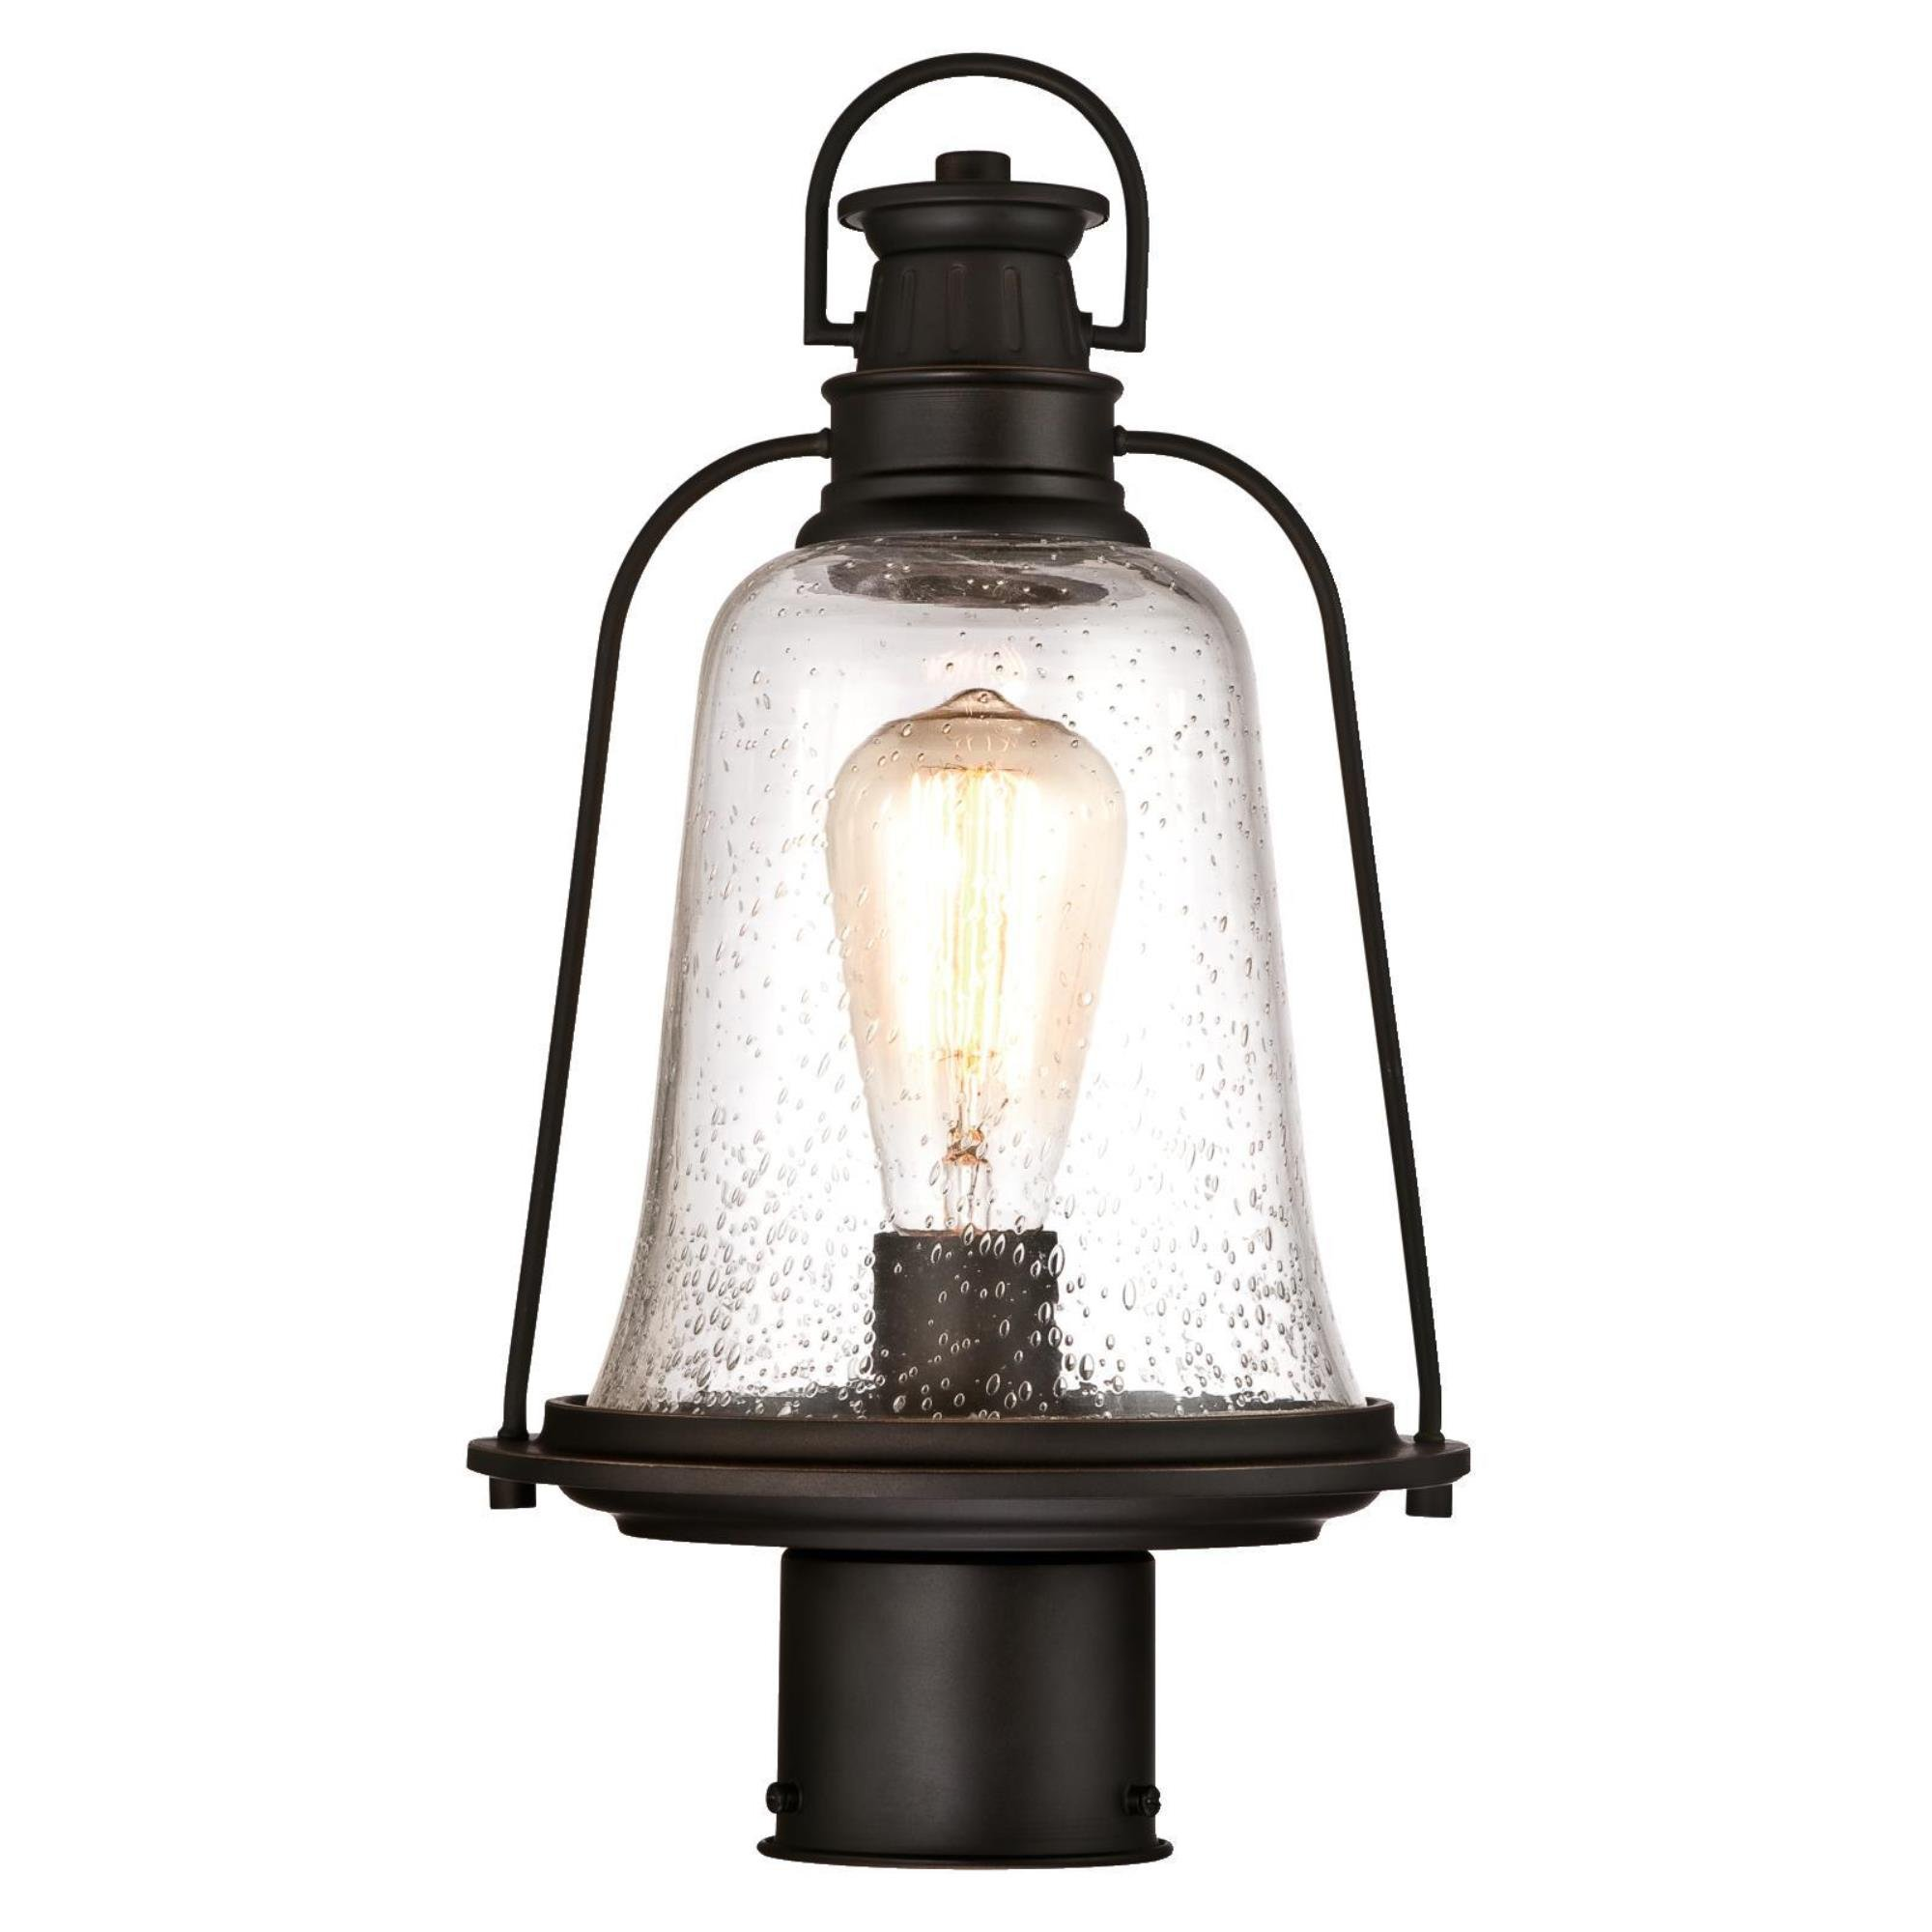 Westinghouse Lighting 6347000 Brynn One-Light Outdoor Post-Top Fixture, Oil Rubbed Bronze Finish with Highlights and Clear Seeded Glass by Westinghouse Lighting